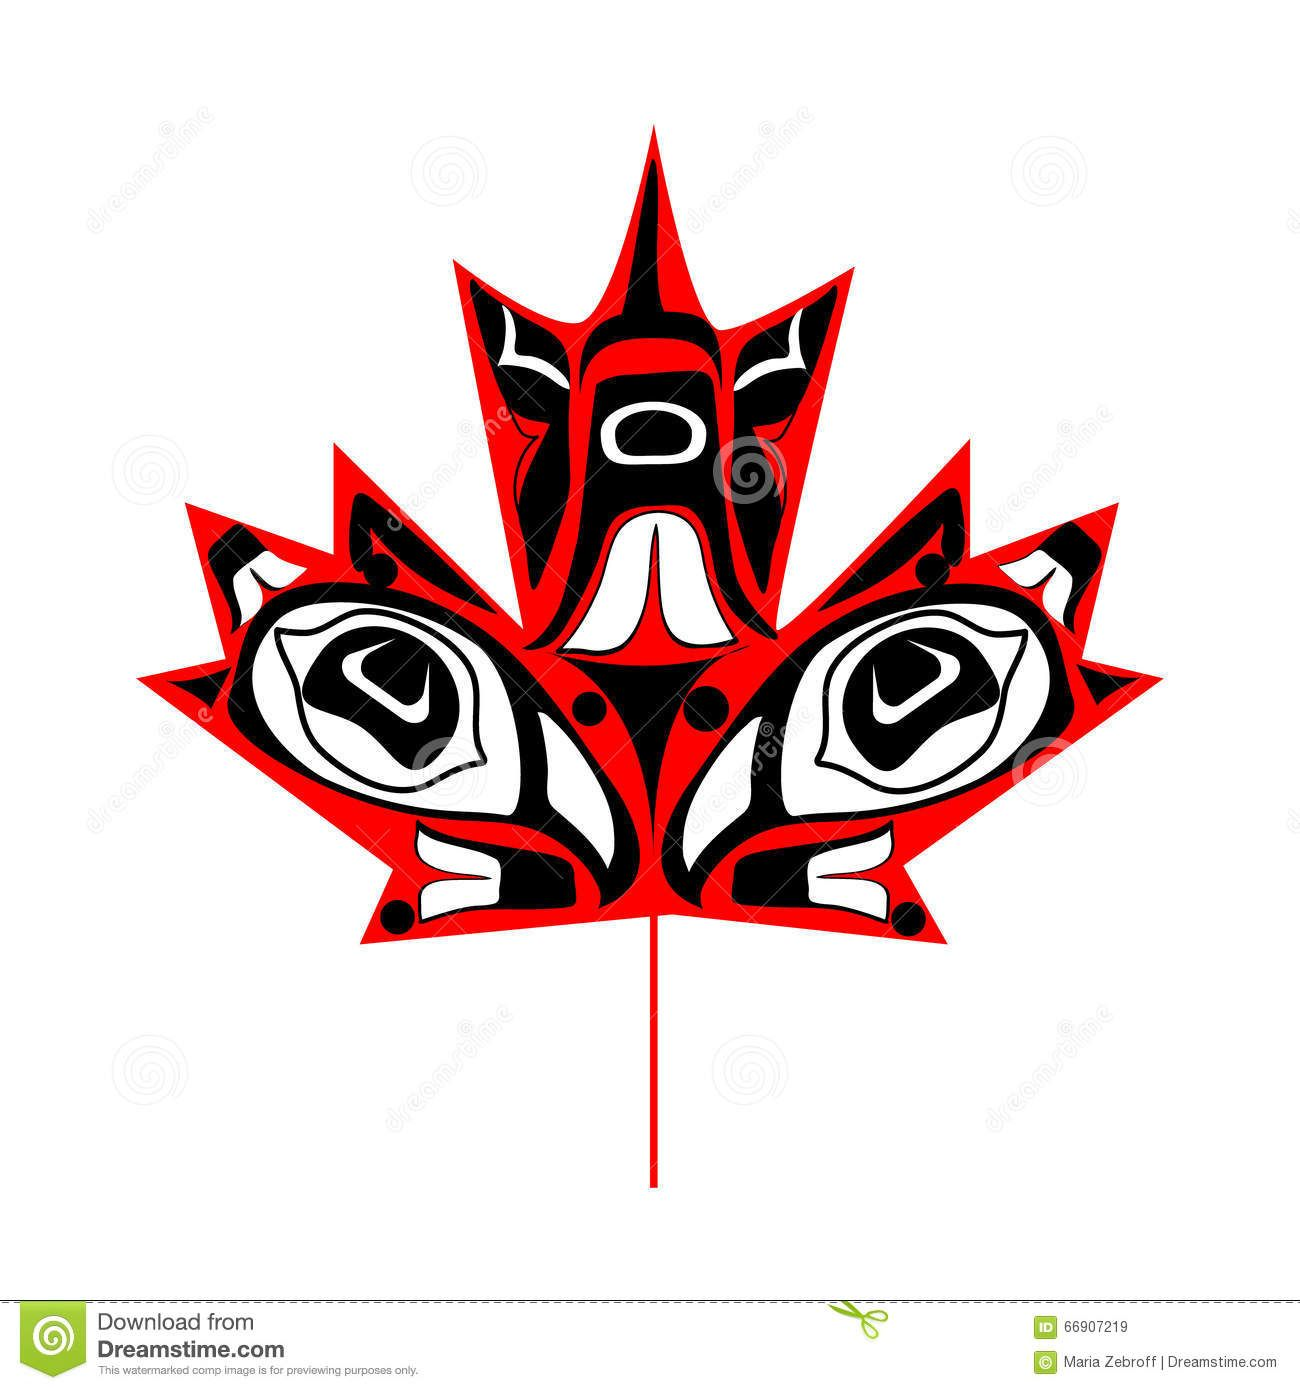 Canadian Native Maple Leaf Download From Over 44 Million High Quality Stock Photos Images Vectors S Native American Art Pacific Northwest Art Canadian Art